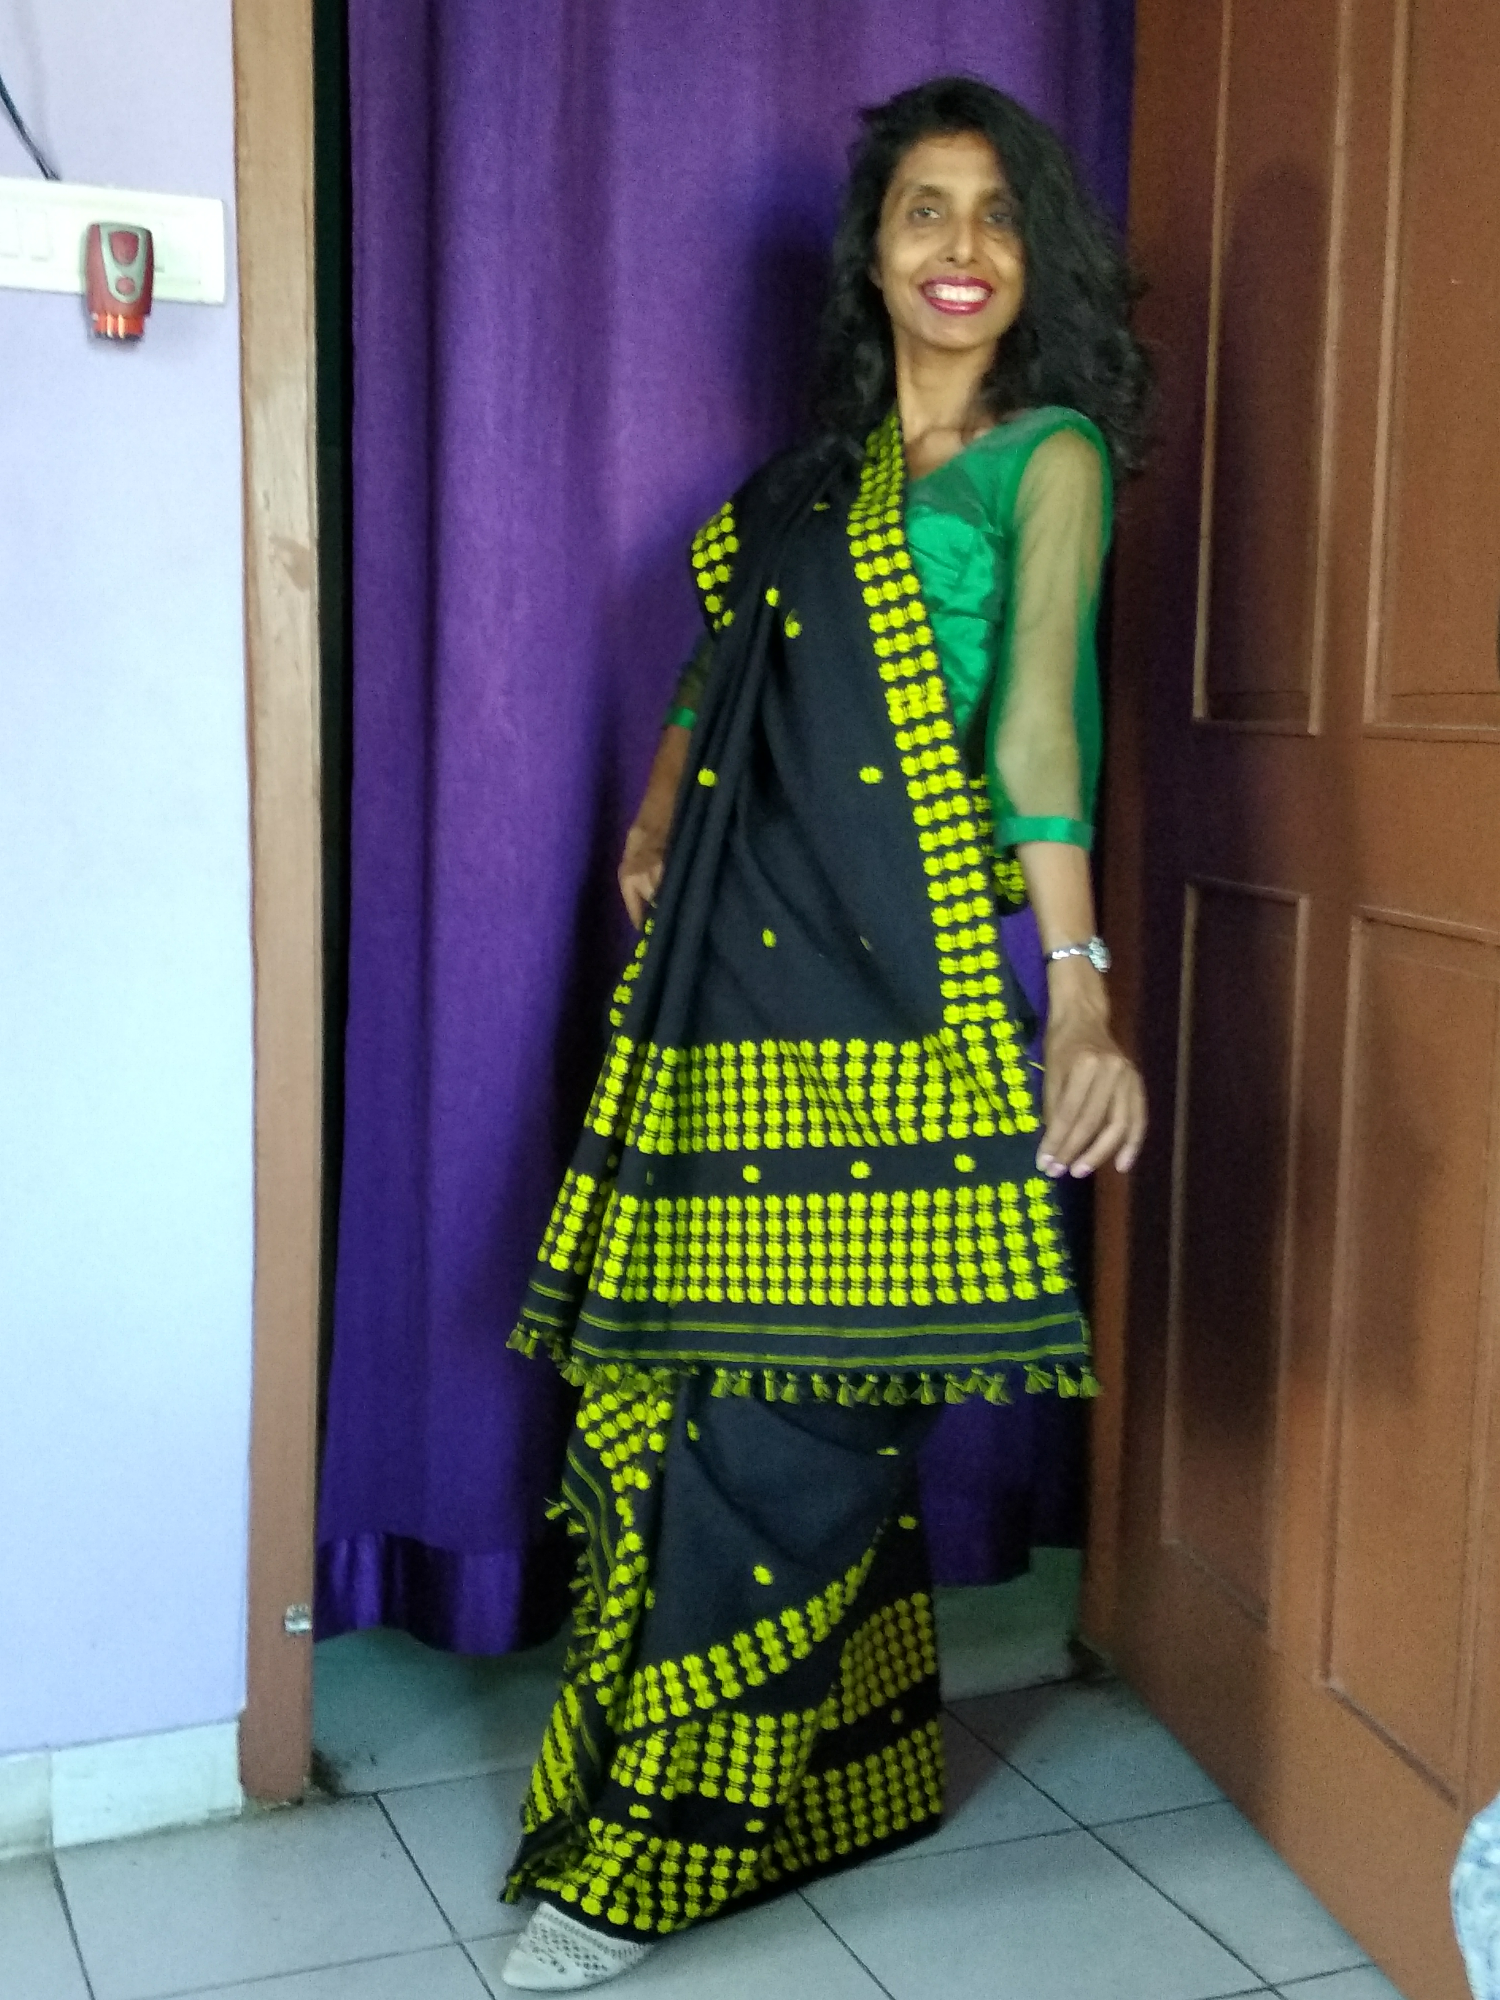 allboutfashion-An ethnic style with our traditional dress of Assam, Mekhela chador